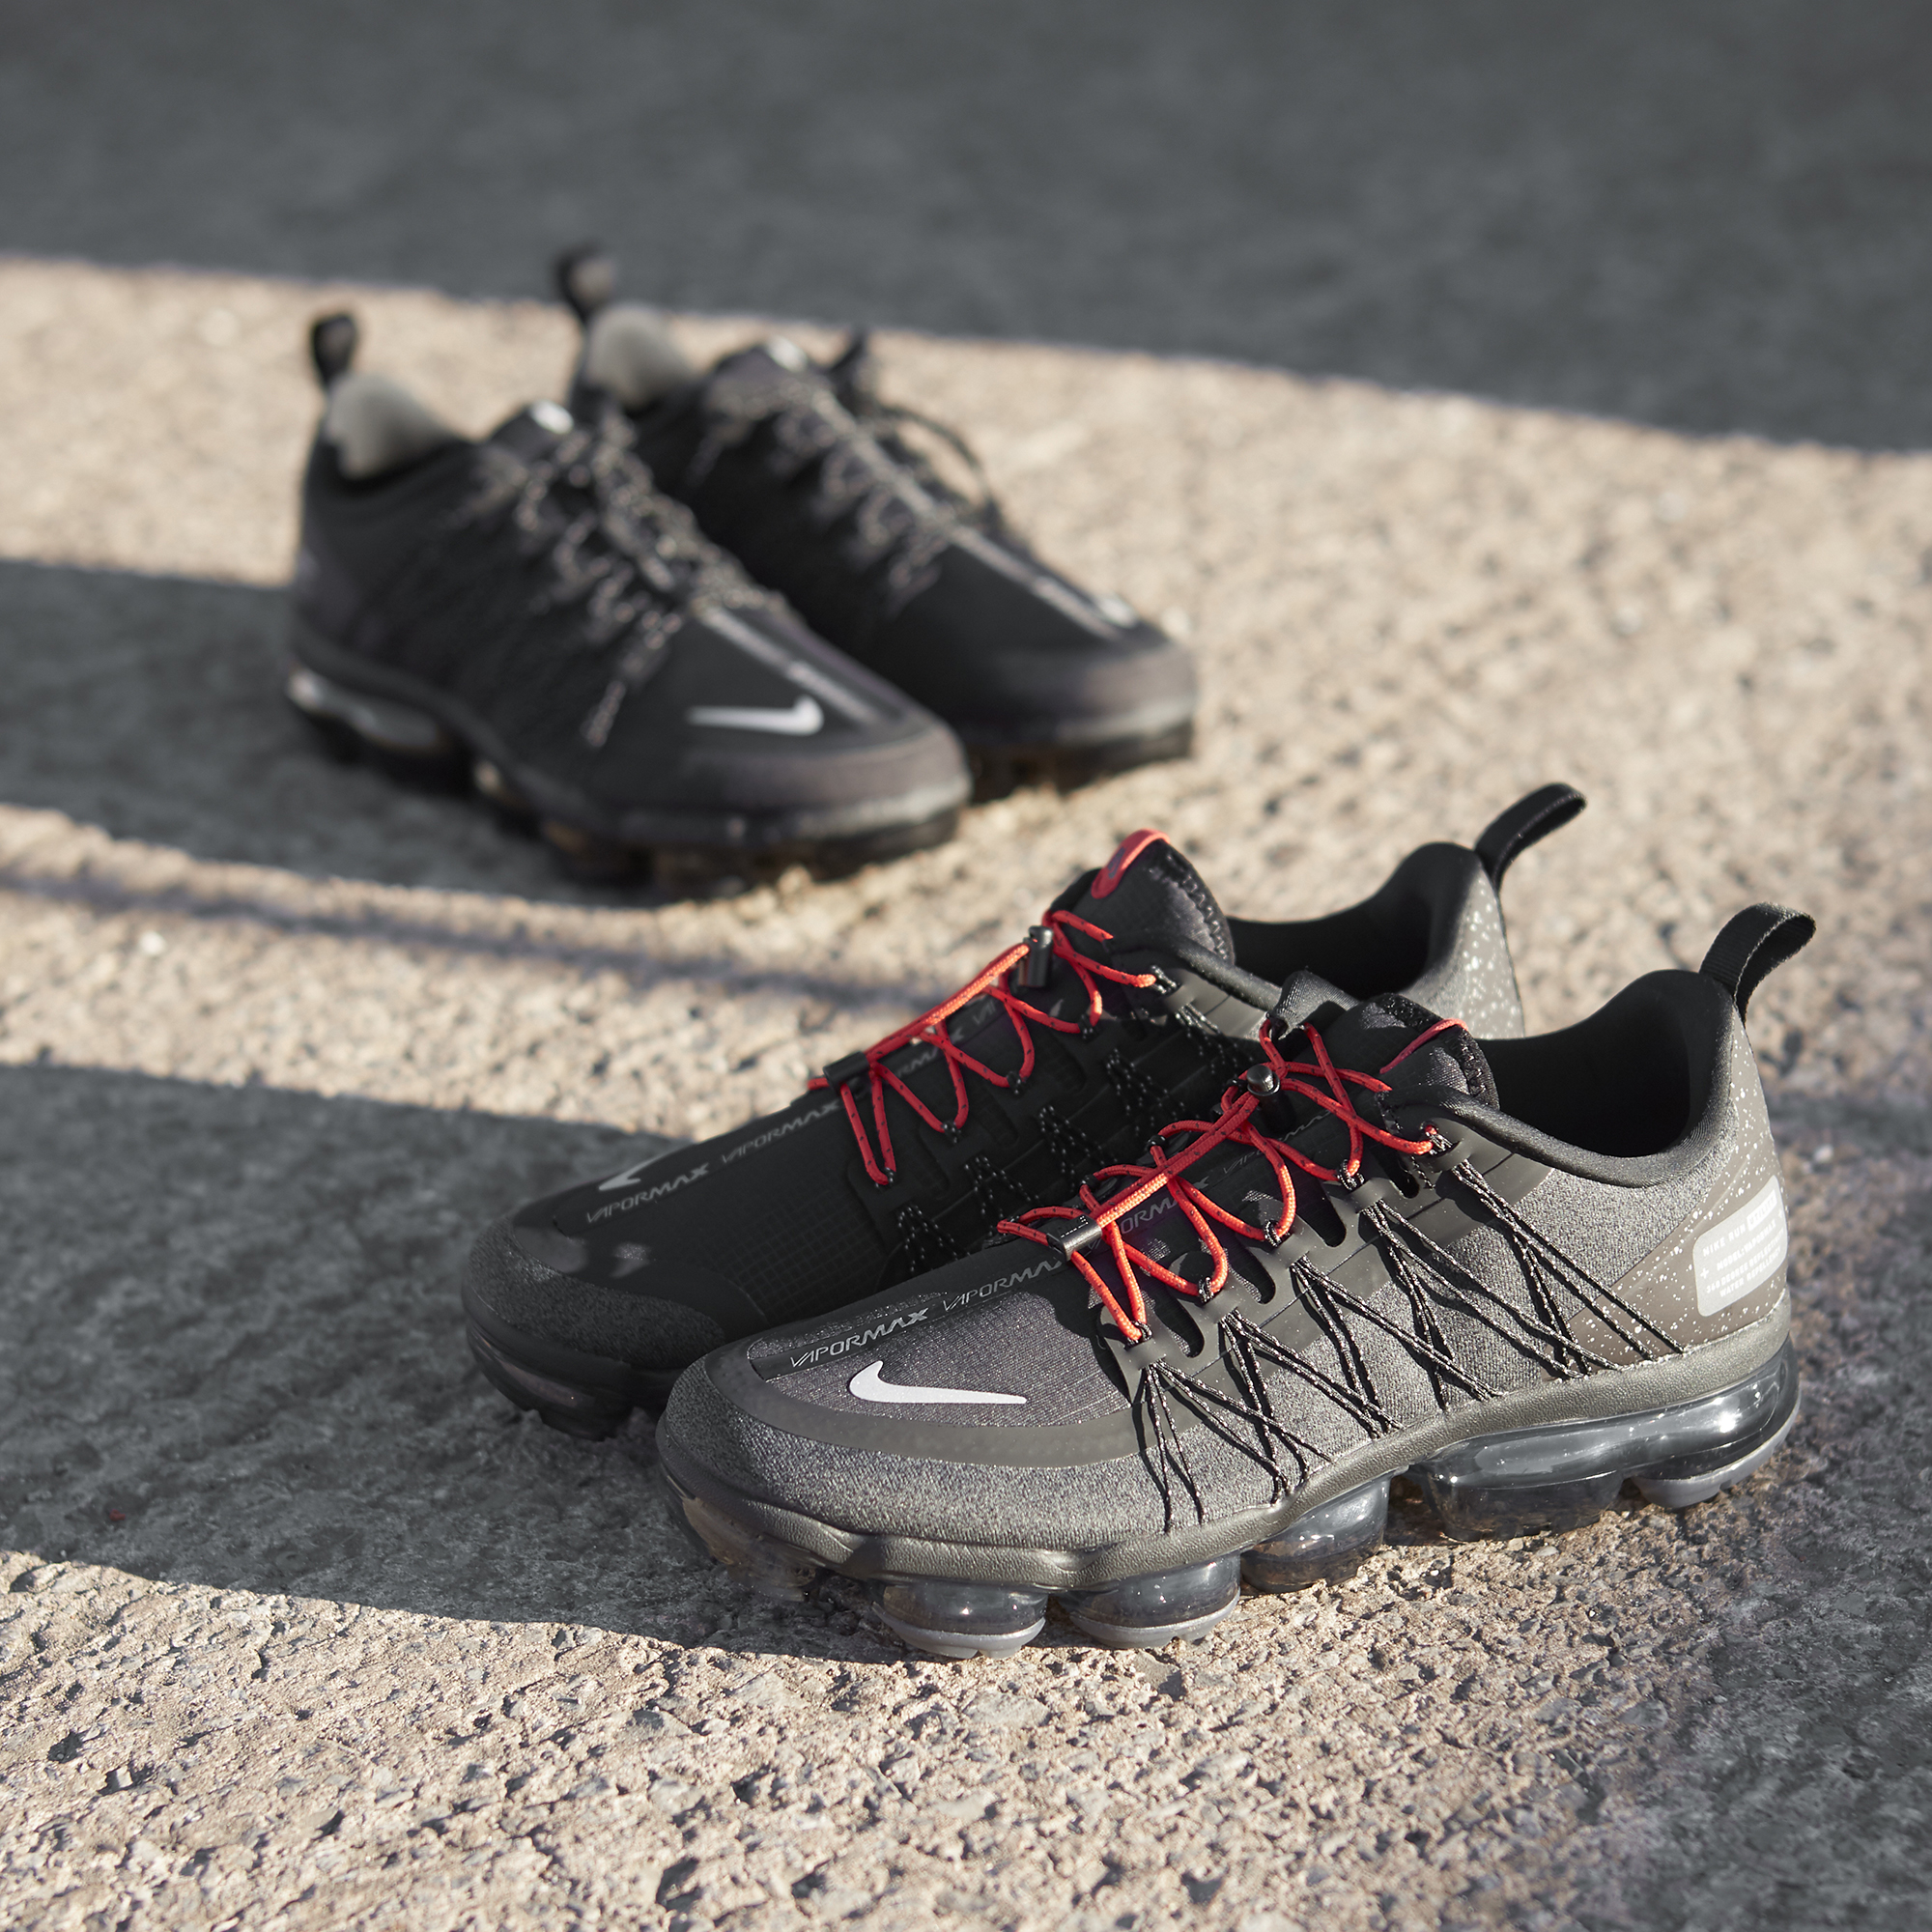 1427e850a9f63 Nike Air VaporMax Utility Run 'Black/Black' and 'Olive/Black' - size ...